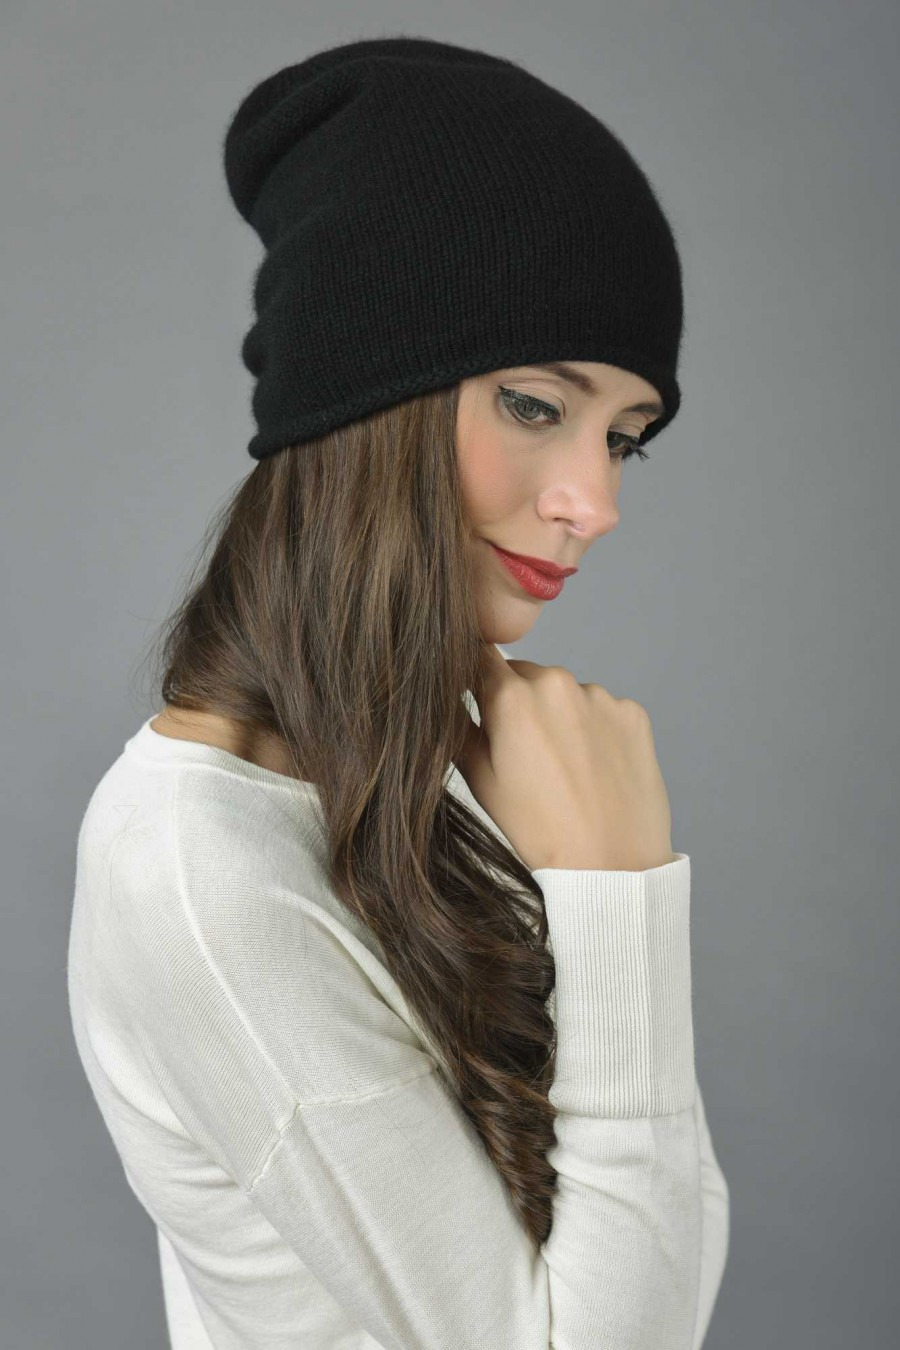 e0b5a26ced6 Pure Cashmere Plain Knitted Slouchy Beanie Hat in Black